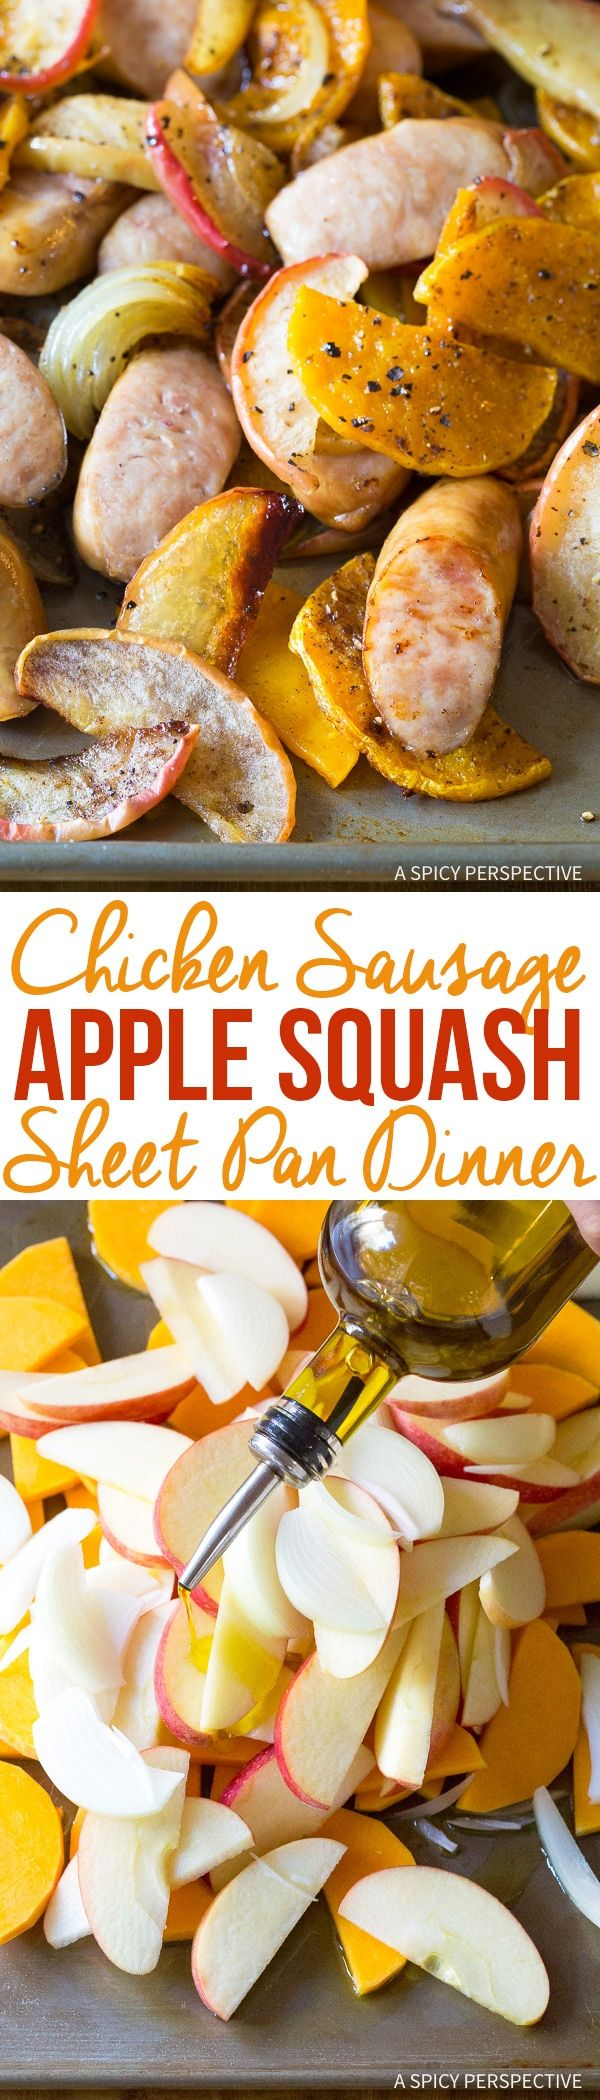 Chicken Sausage Apple Squash Sheet Pan Dinner - A quick 6-Ingredients One-Pan dinner recipe that is both comforting and healthy! via @spicyperspectiv